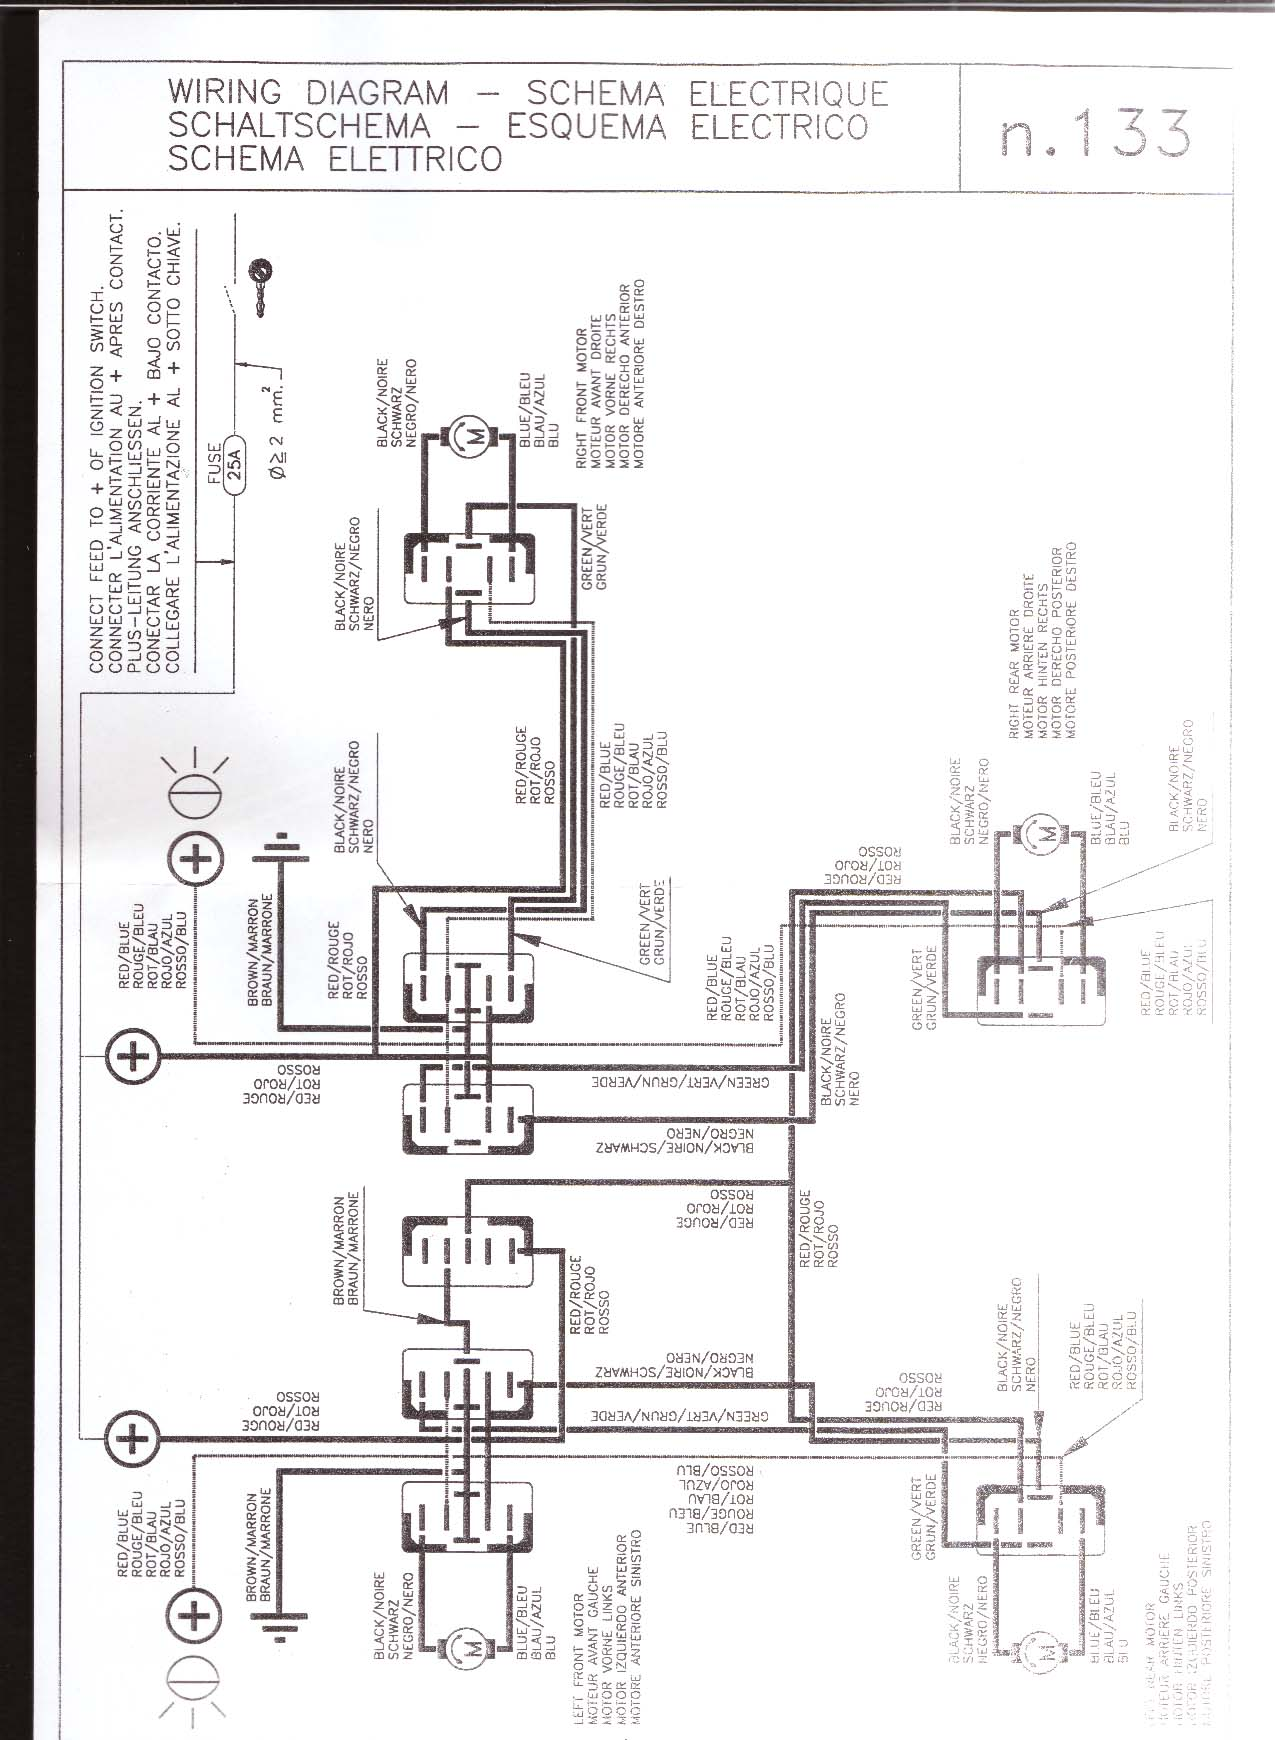 Window Wiring Diagram 2003 Eclipse Spyder, Window, Free